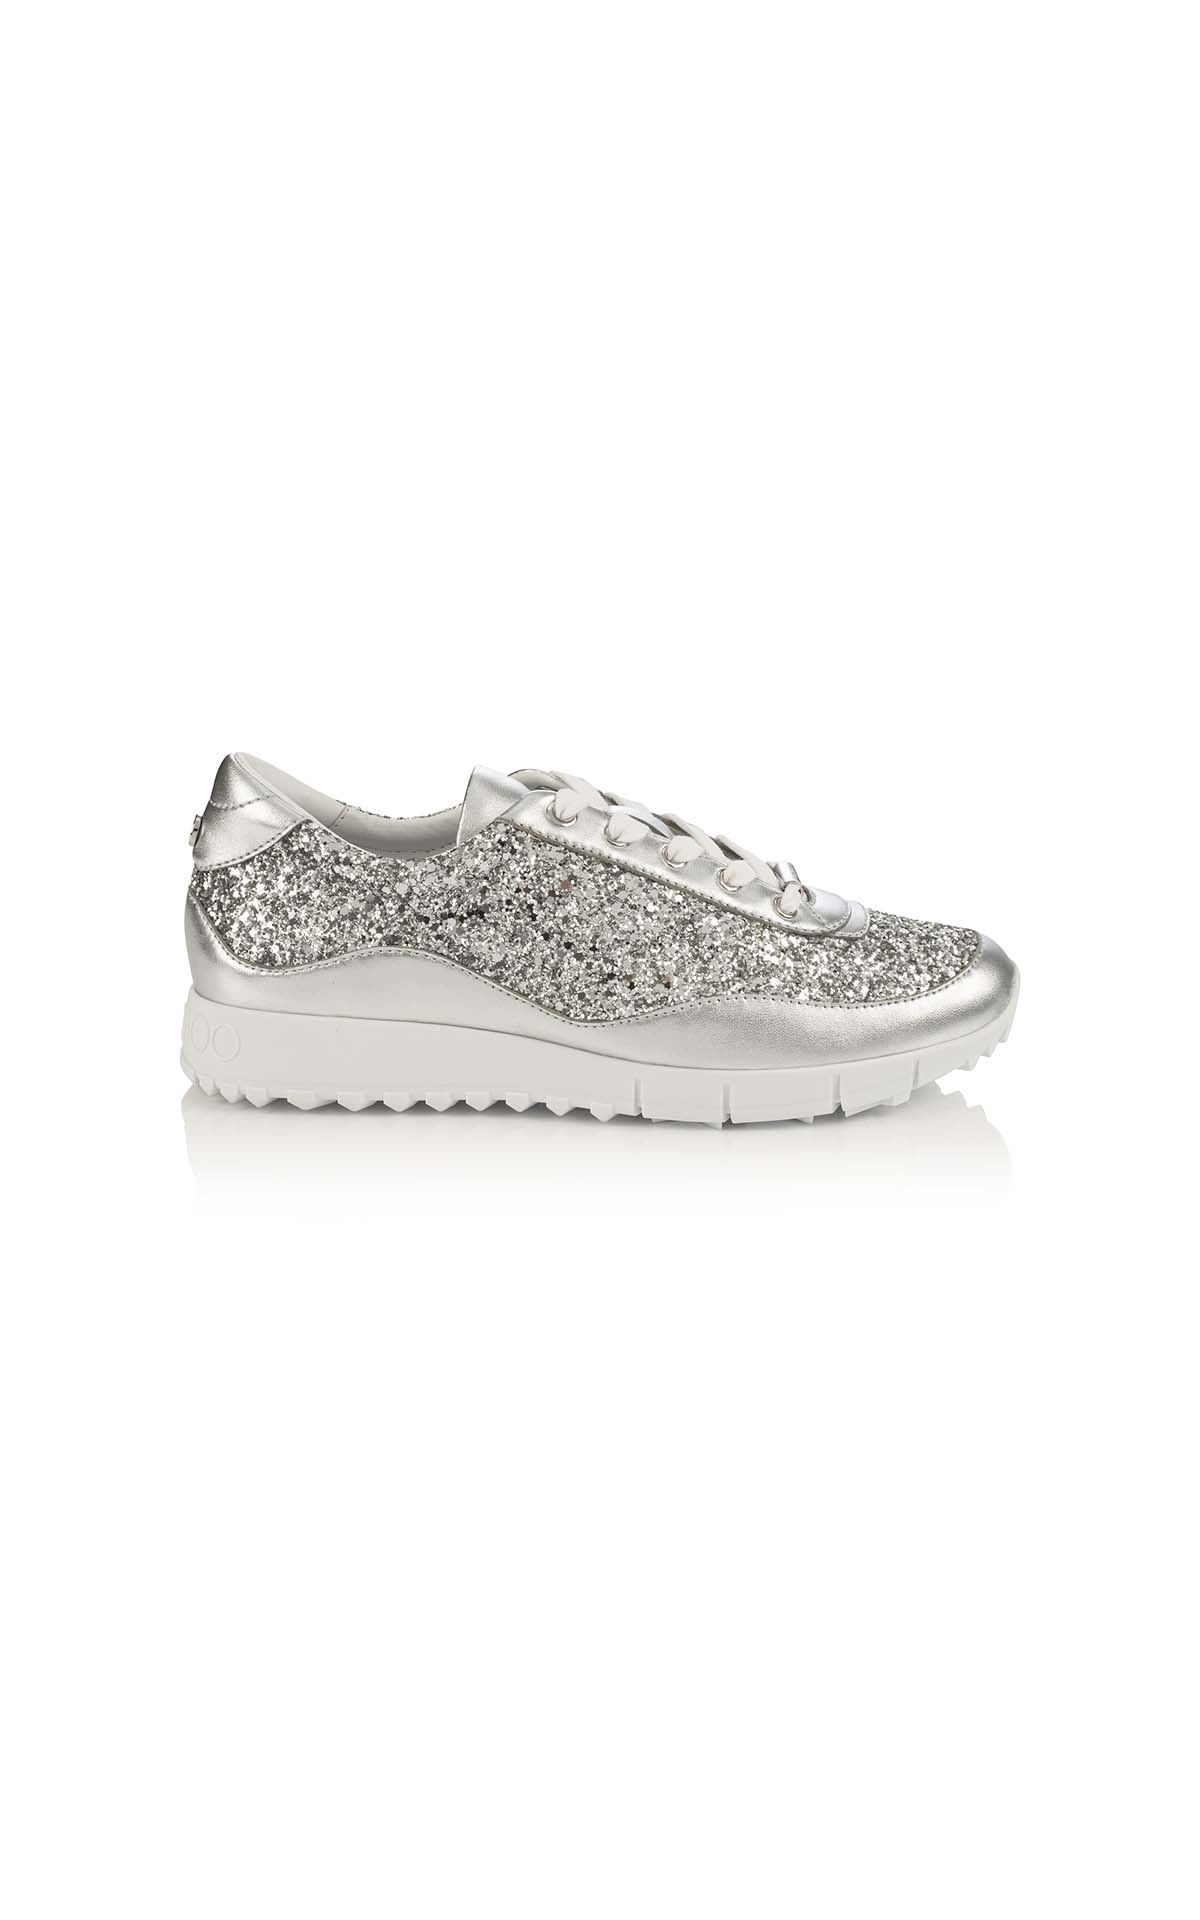 Jimmy Choo Monza coarse glitter metallic nappa silver at The Bicester Village Shopping Collection